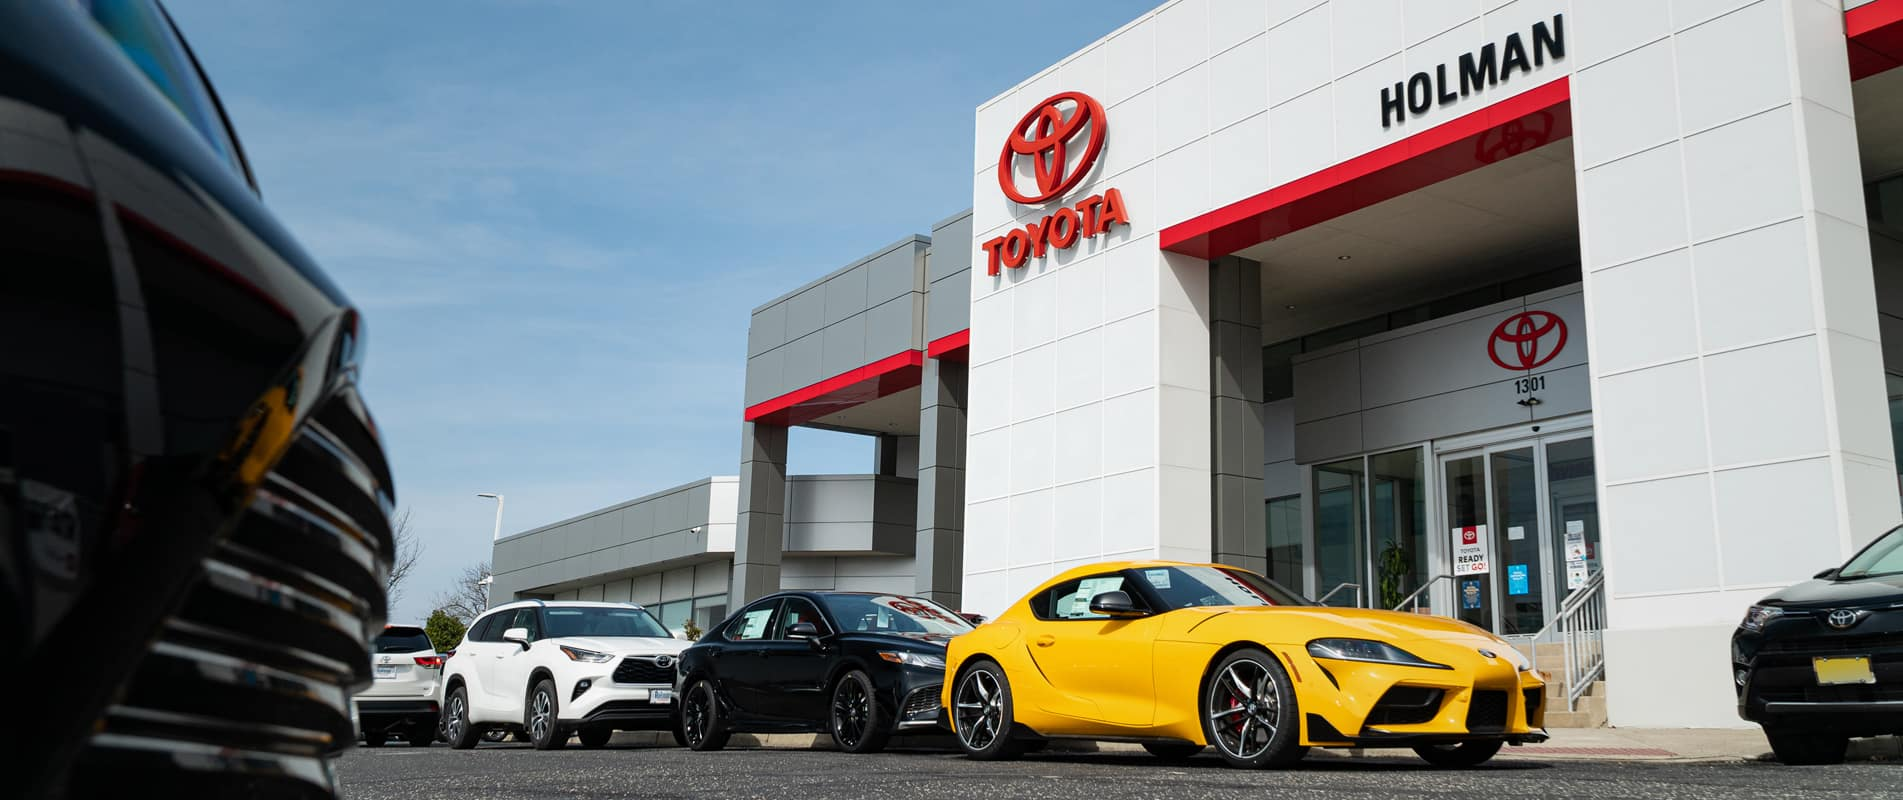 Dealership front with lineup of cars